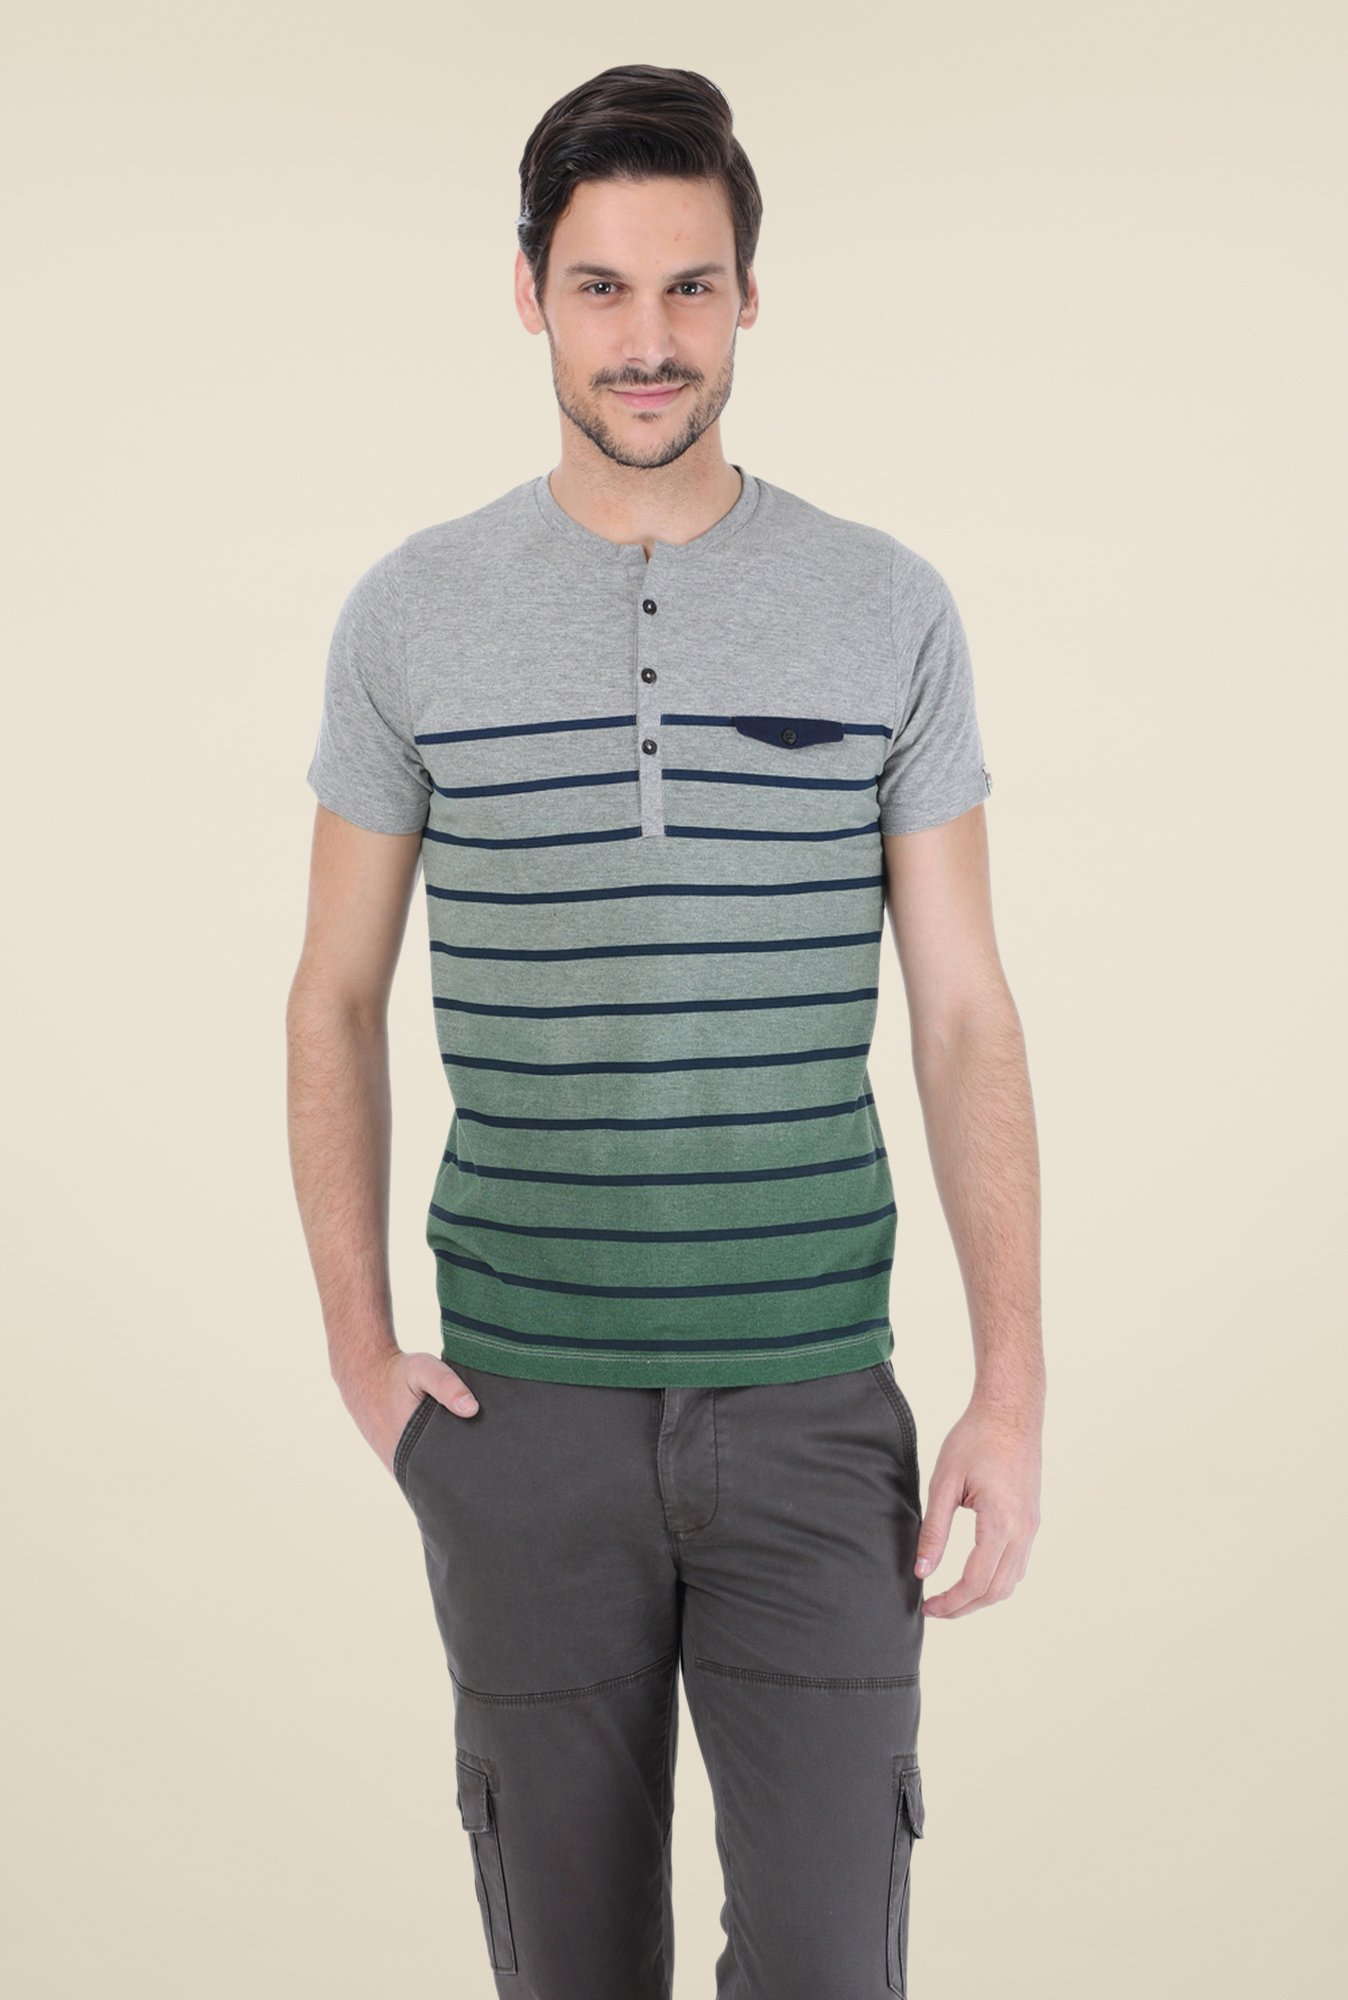 Basics Grey Striped T-shirt